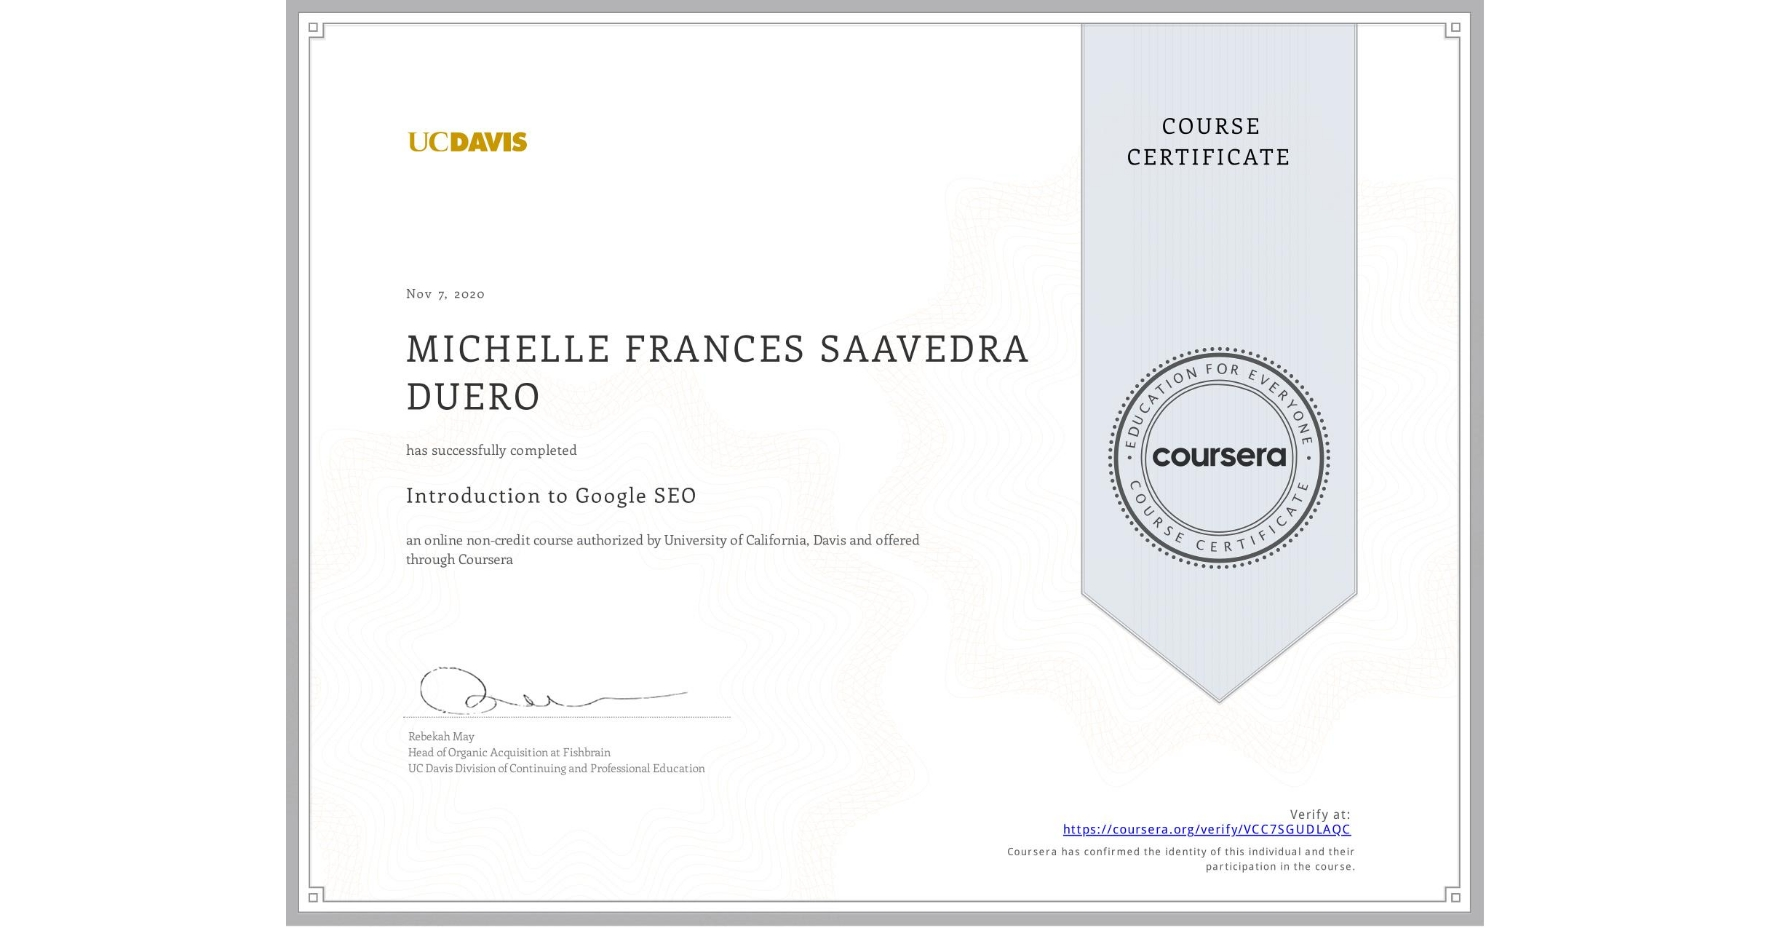 View certificate for MICHELLE FRANCES  SAAVEDRA DUERO, Introduction to Google SEO, an online non-credit course authorized by University of California, Davis and offered through Coursera